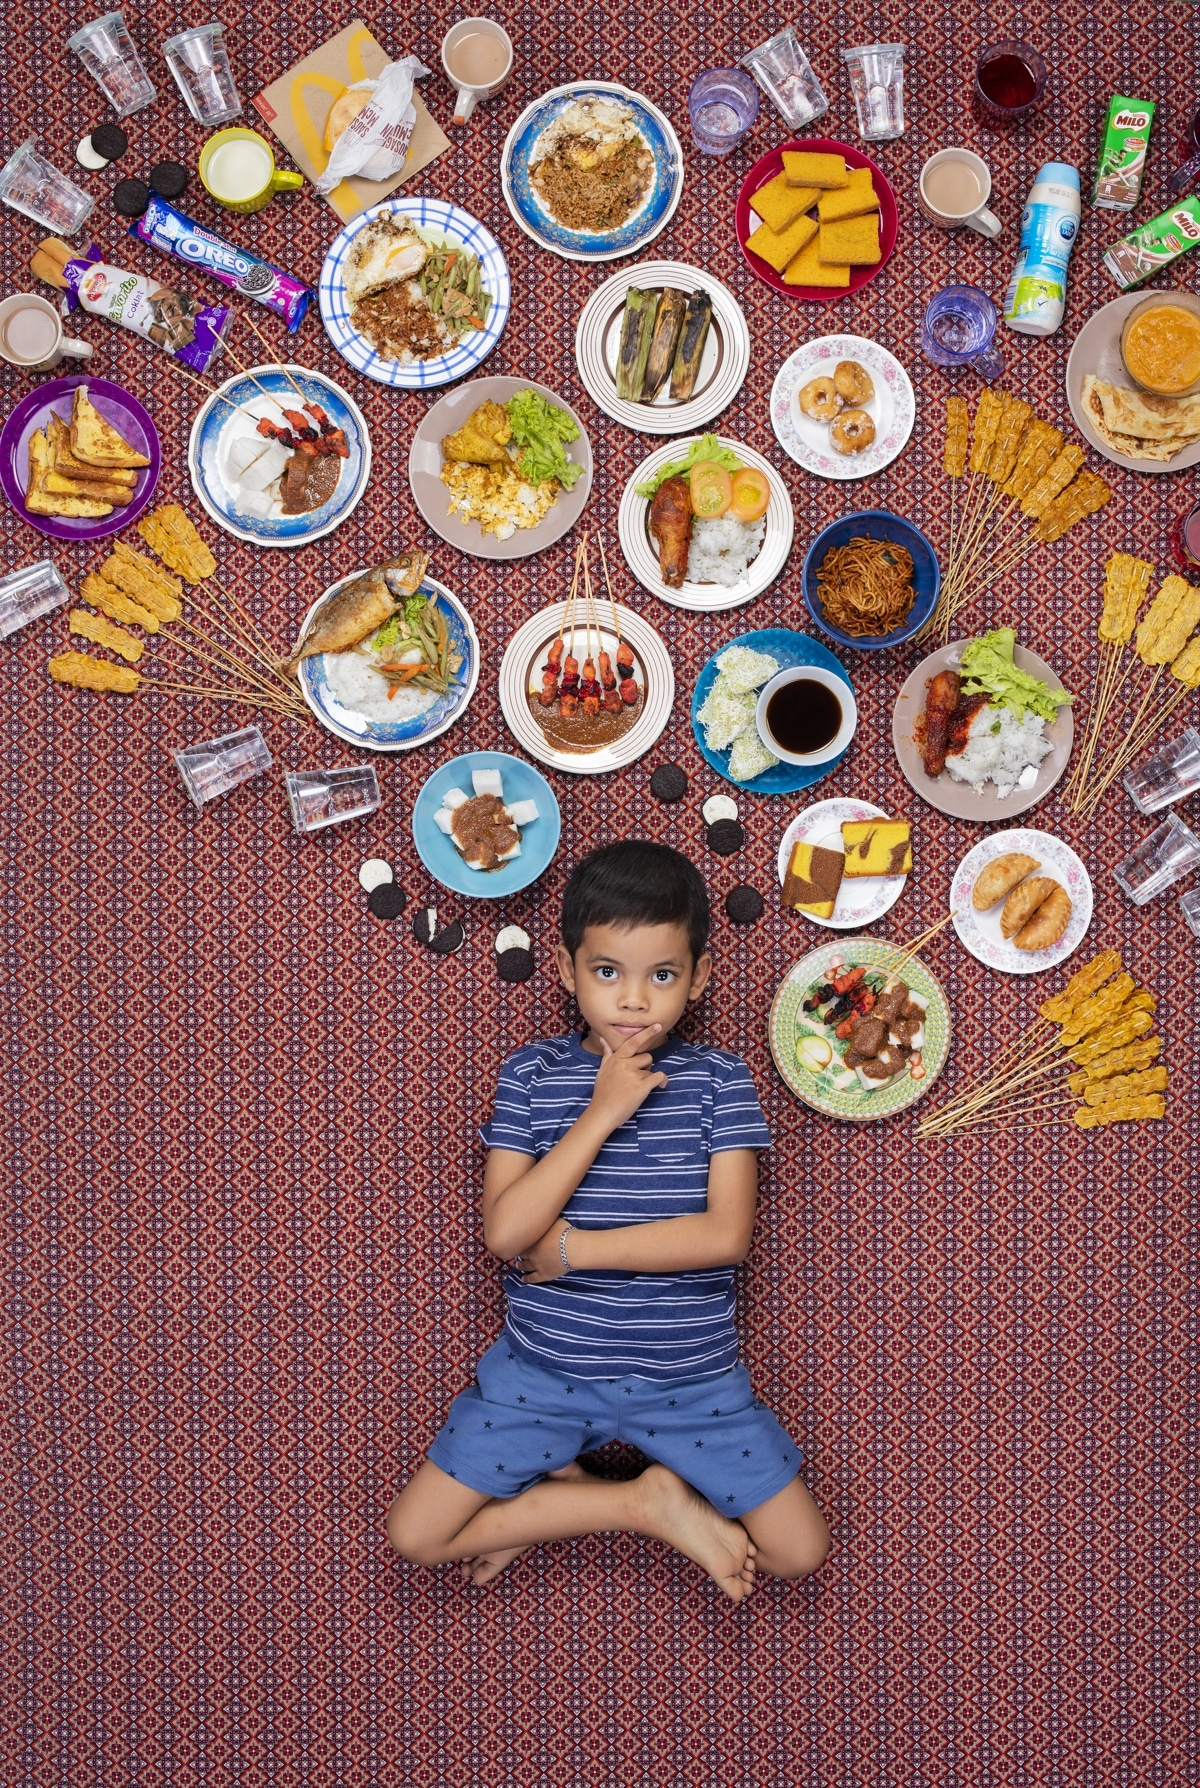 What kids eat around the world?